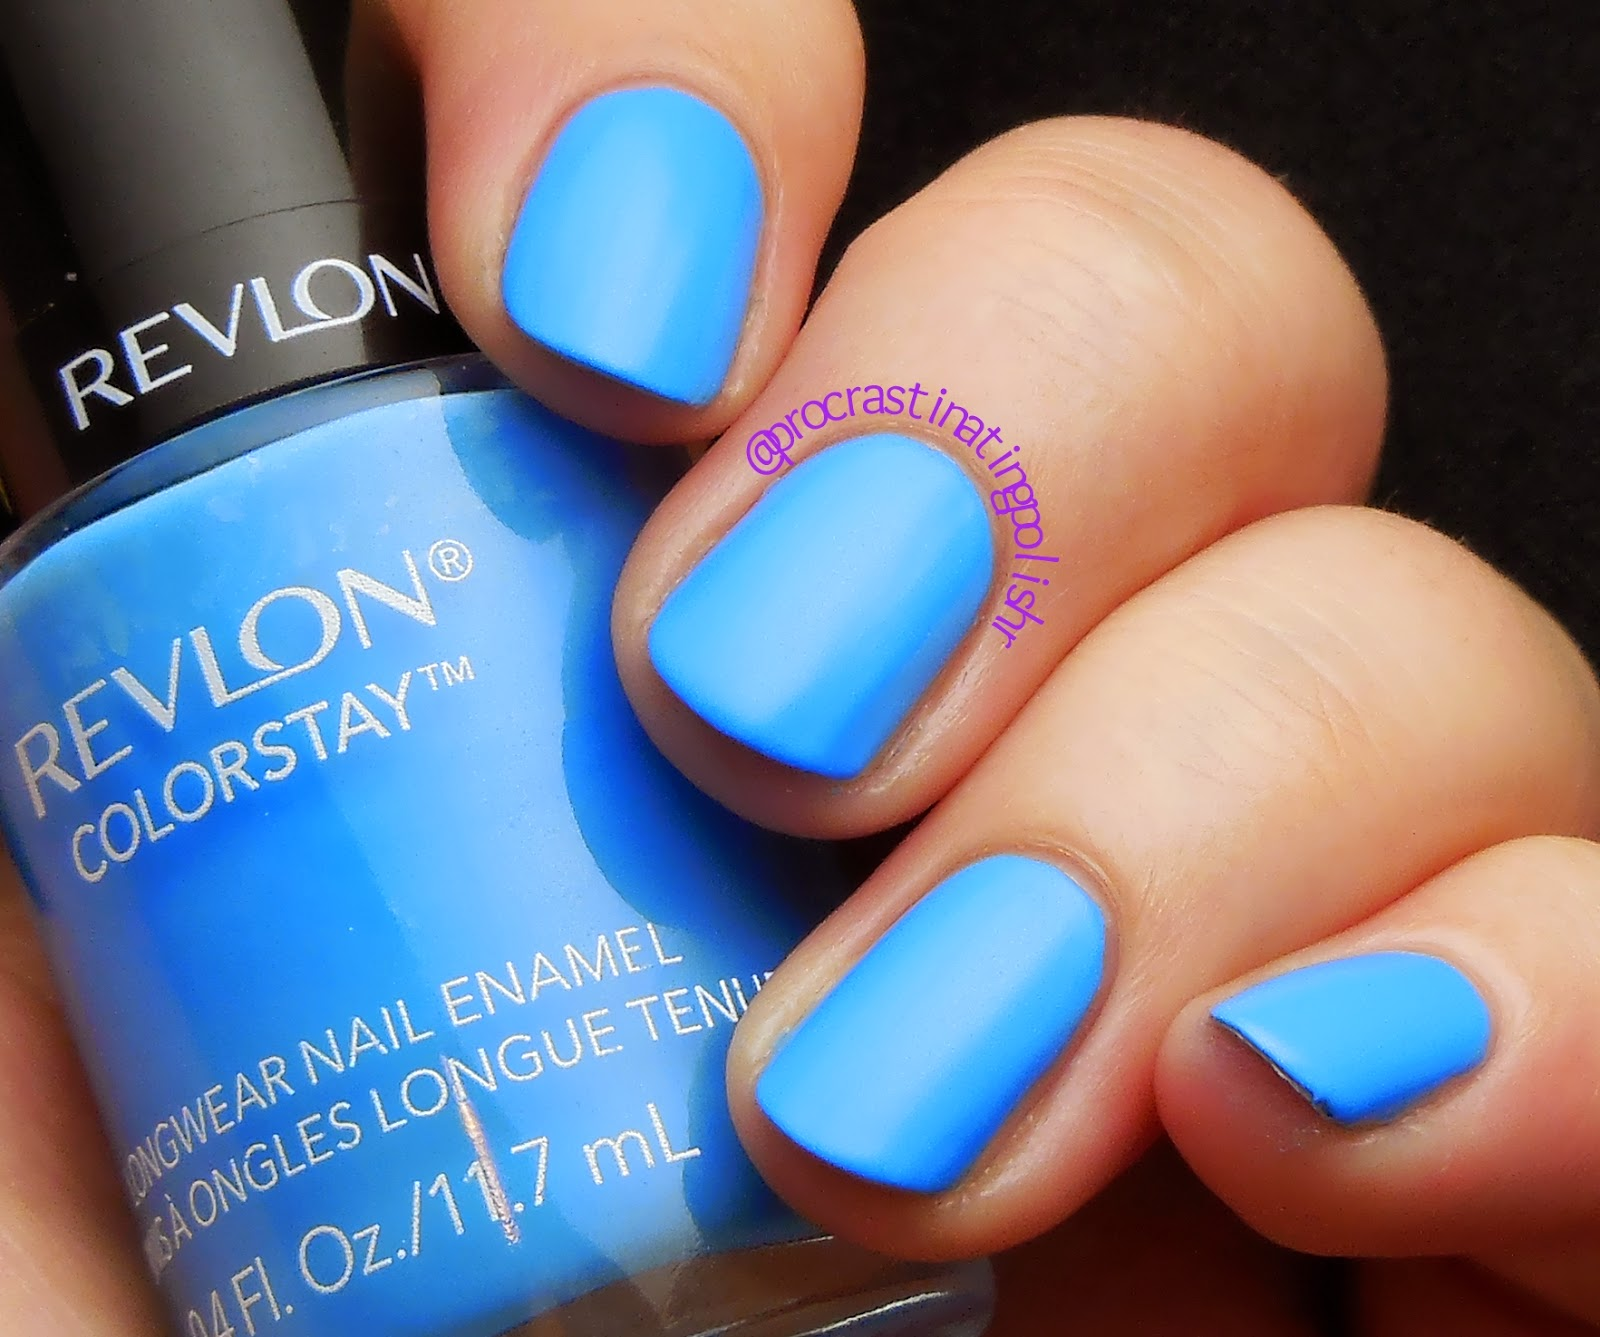 Revlon Colorstay - Coastal Surf